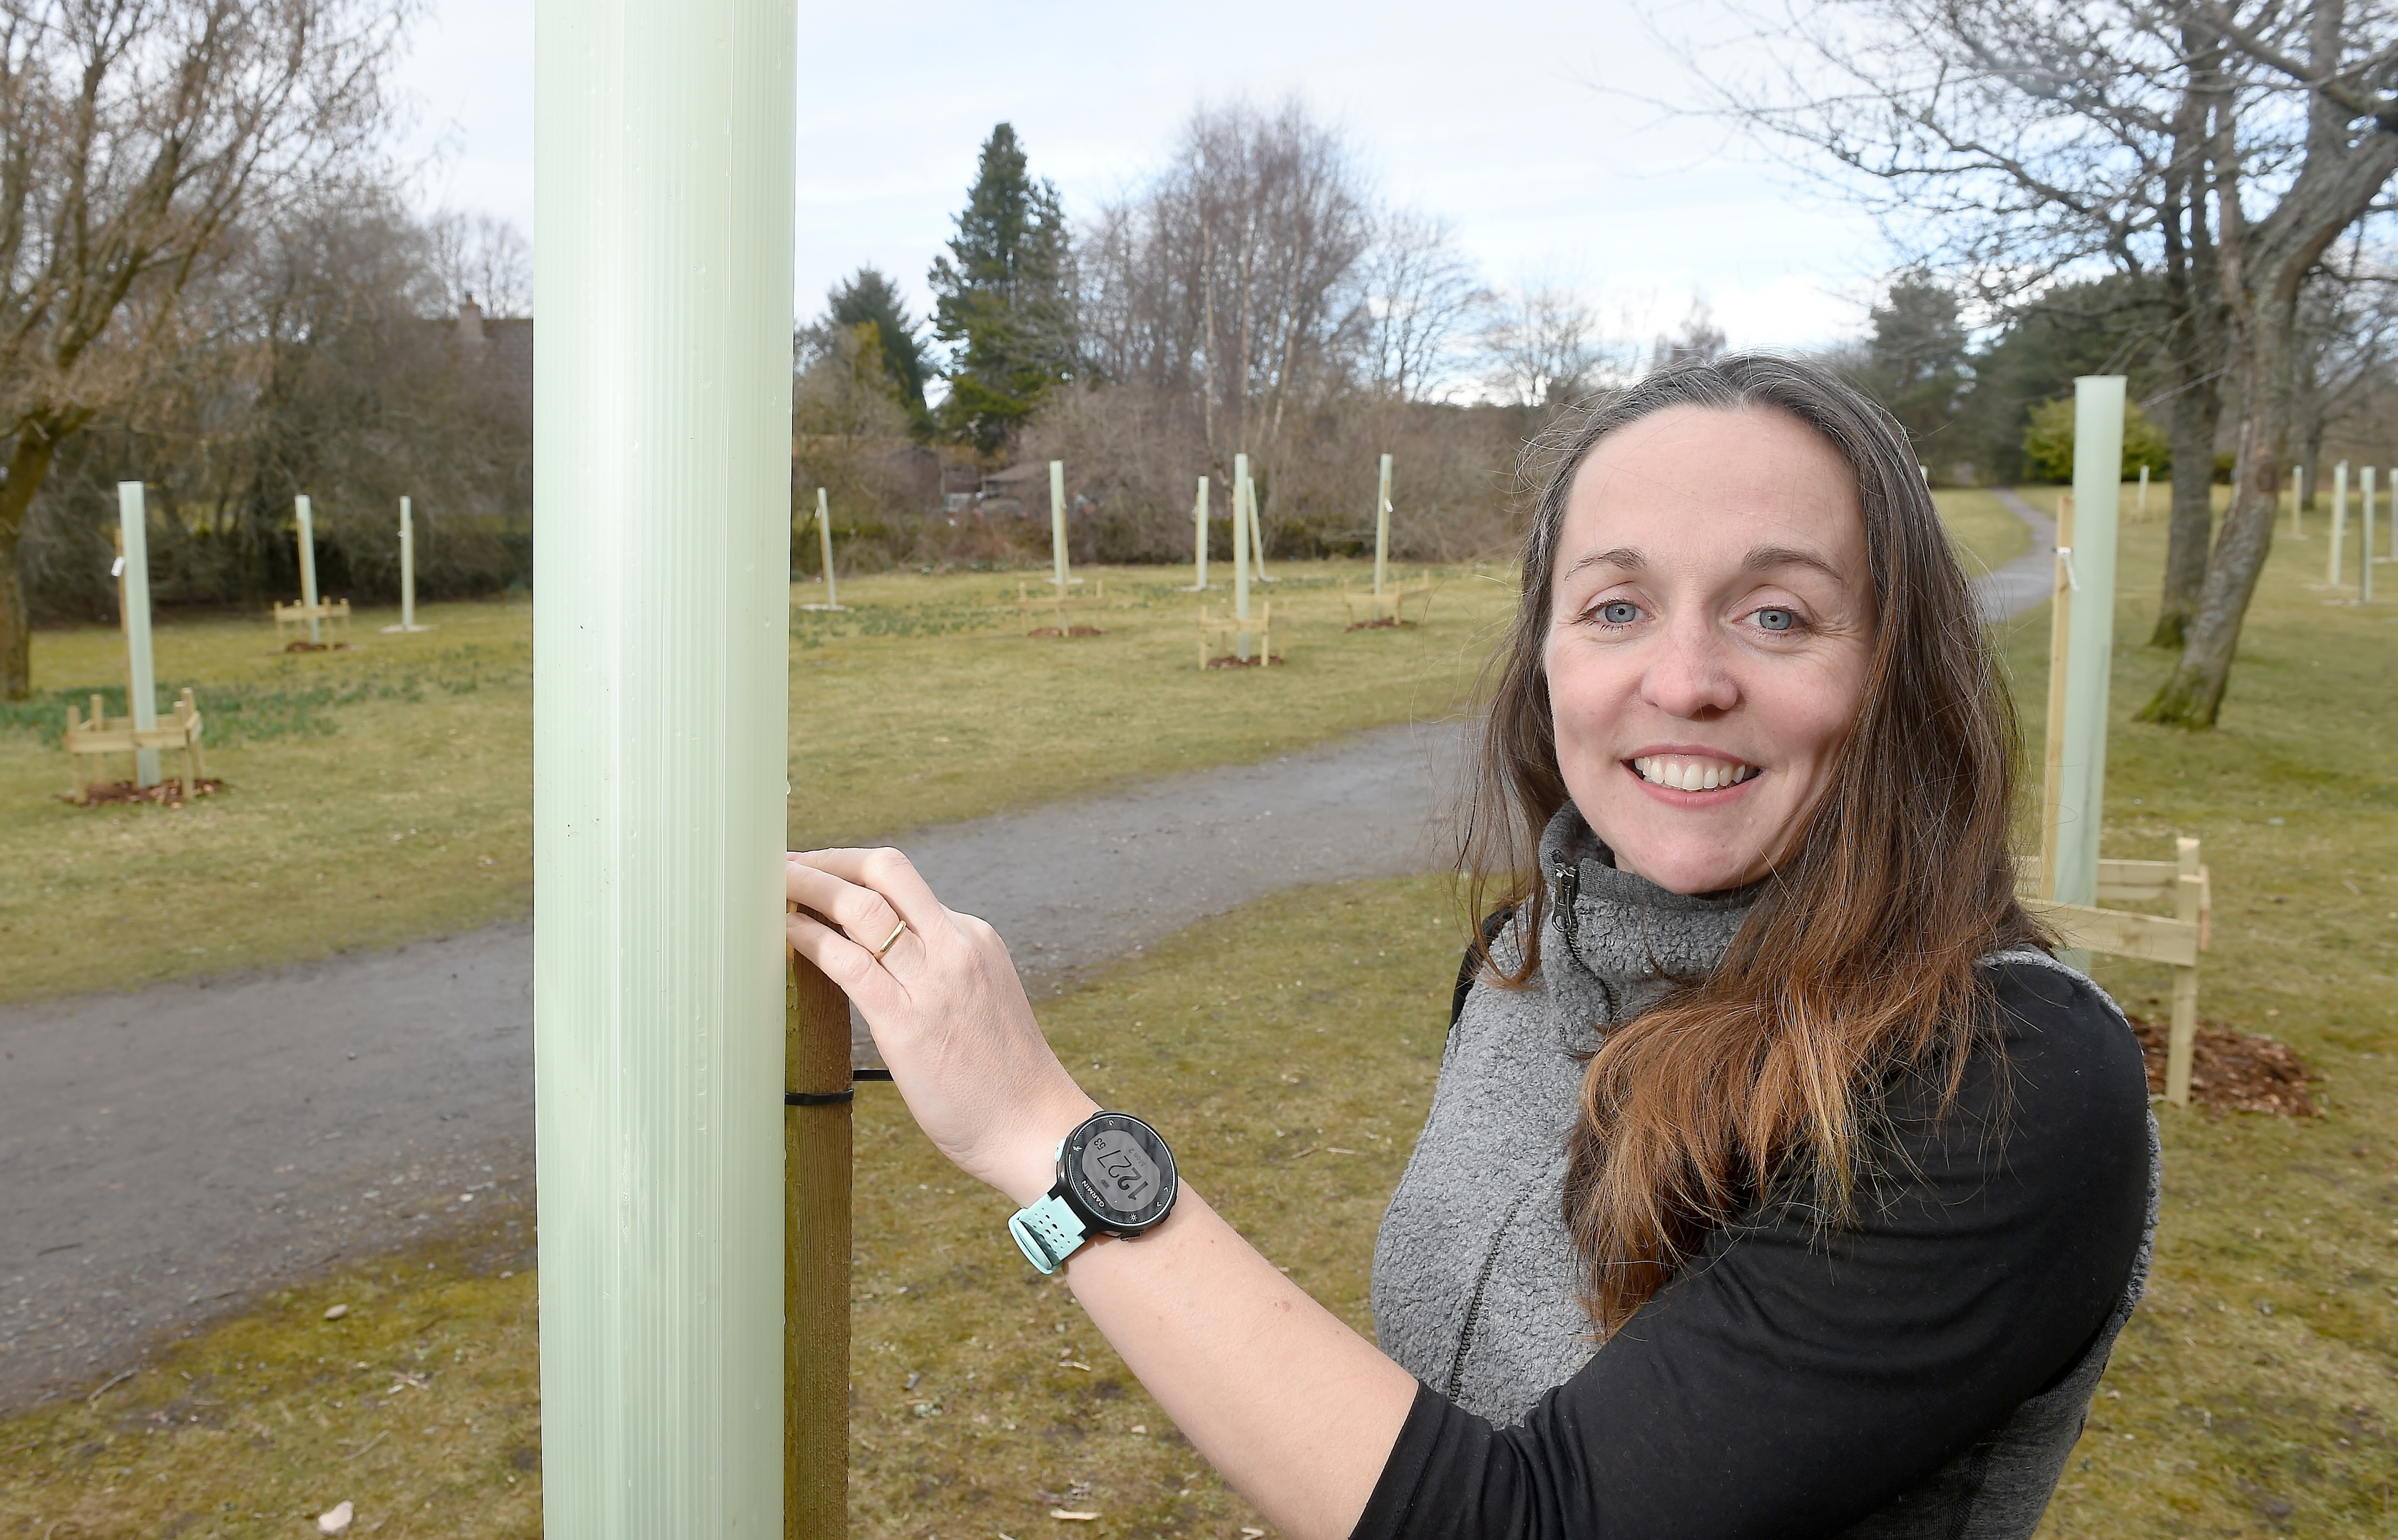 Emma Whitham, the Founding Director of Moo Food, owners of the community orchard in Muir of Ord.